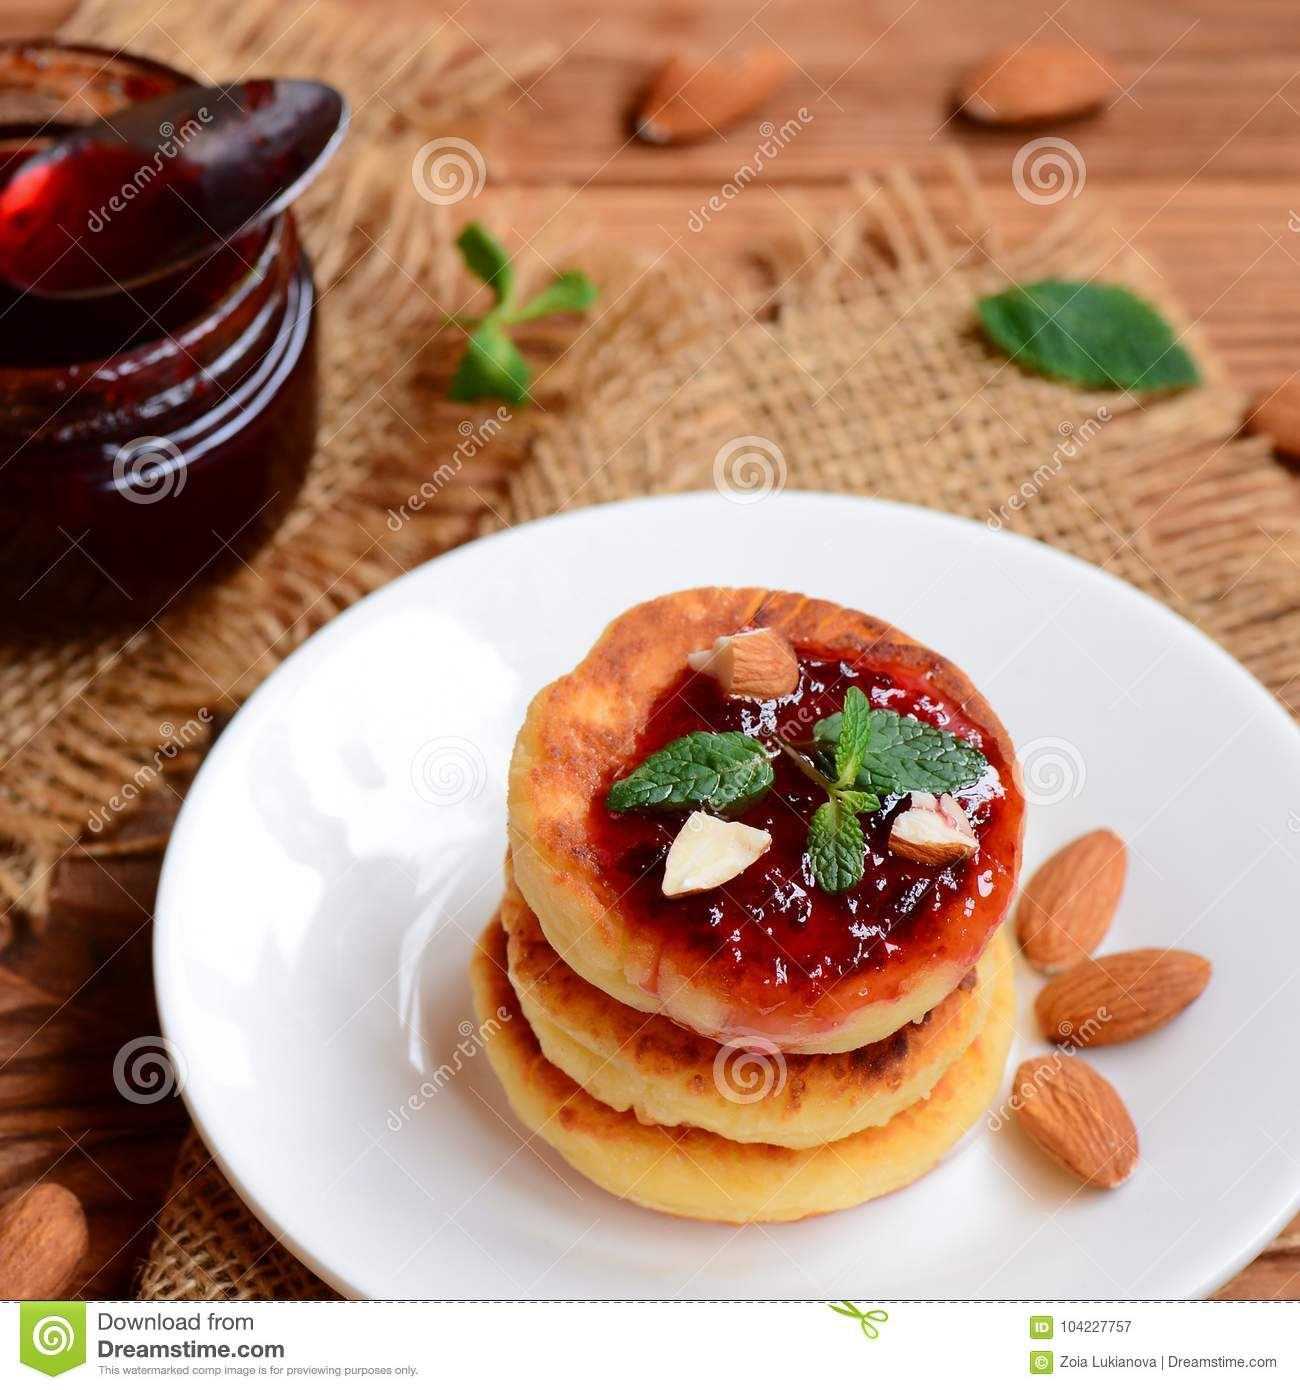 Cottage Cheese With Jam: Roasted Cottage Cheese Pancakes With Berry Jam, Almonds